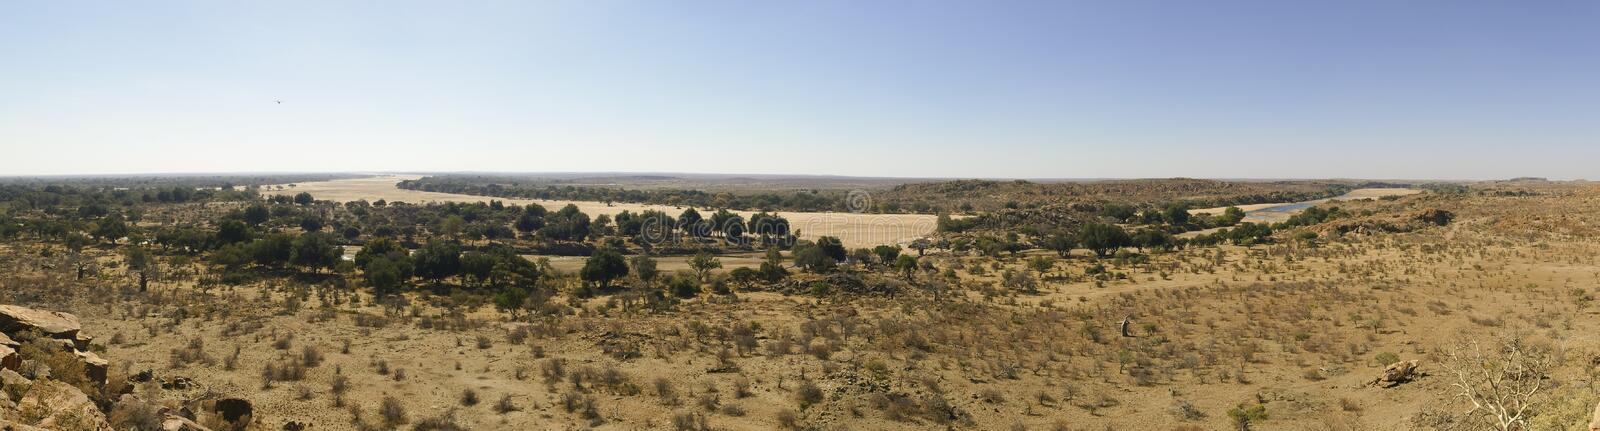 Limpopo river crossing the desert landscape of Mapungubwe Nation stock photos